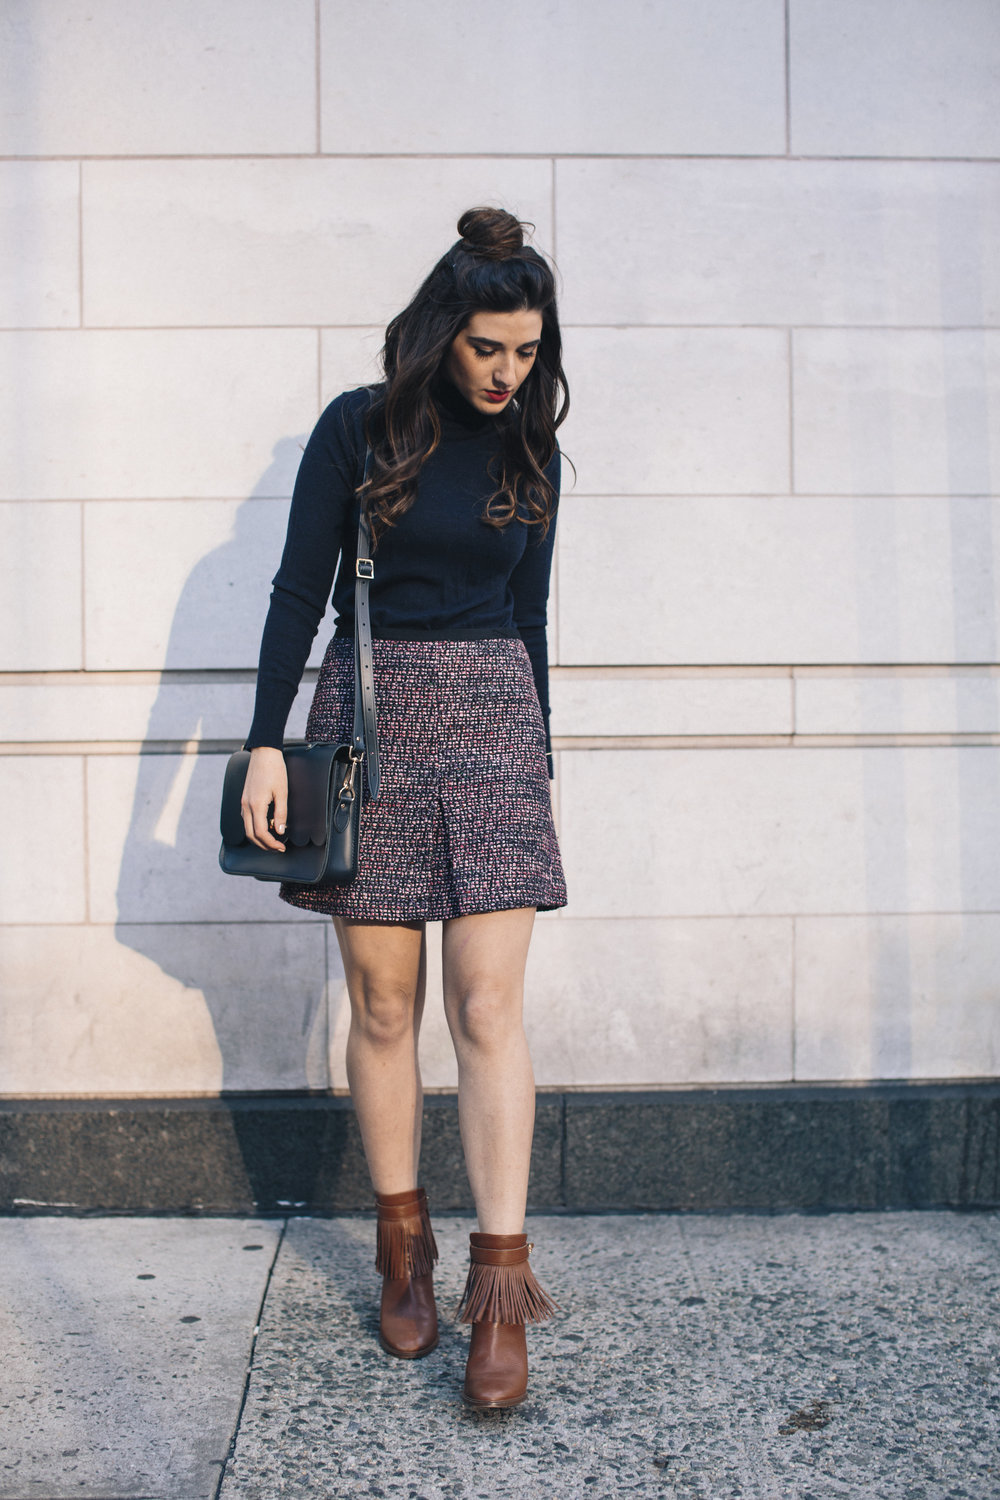 Navy Turtleneck Tweed Skirt My 10 Best Blogging Moments Louboutins & Love Fashion Blog Esther Santer NYC Street Style Blogger Outfit OOTD Trendy Cambridge Satchel Topknot Bag Hair Bun Women Girl Winter Shop Beauty Shoes Tan Fringe Ivanka Trump Booties.jpg